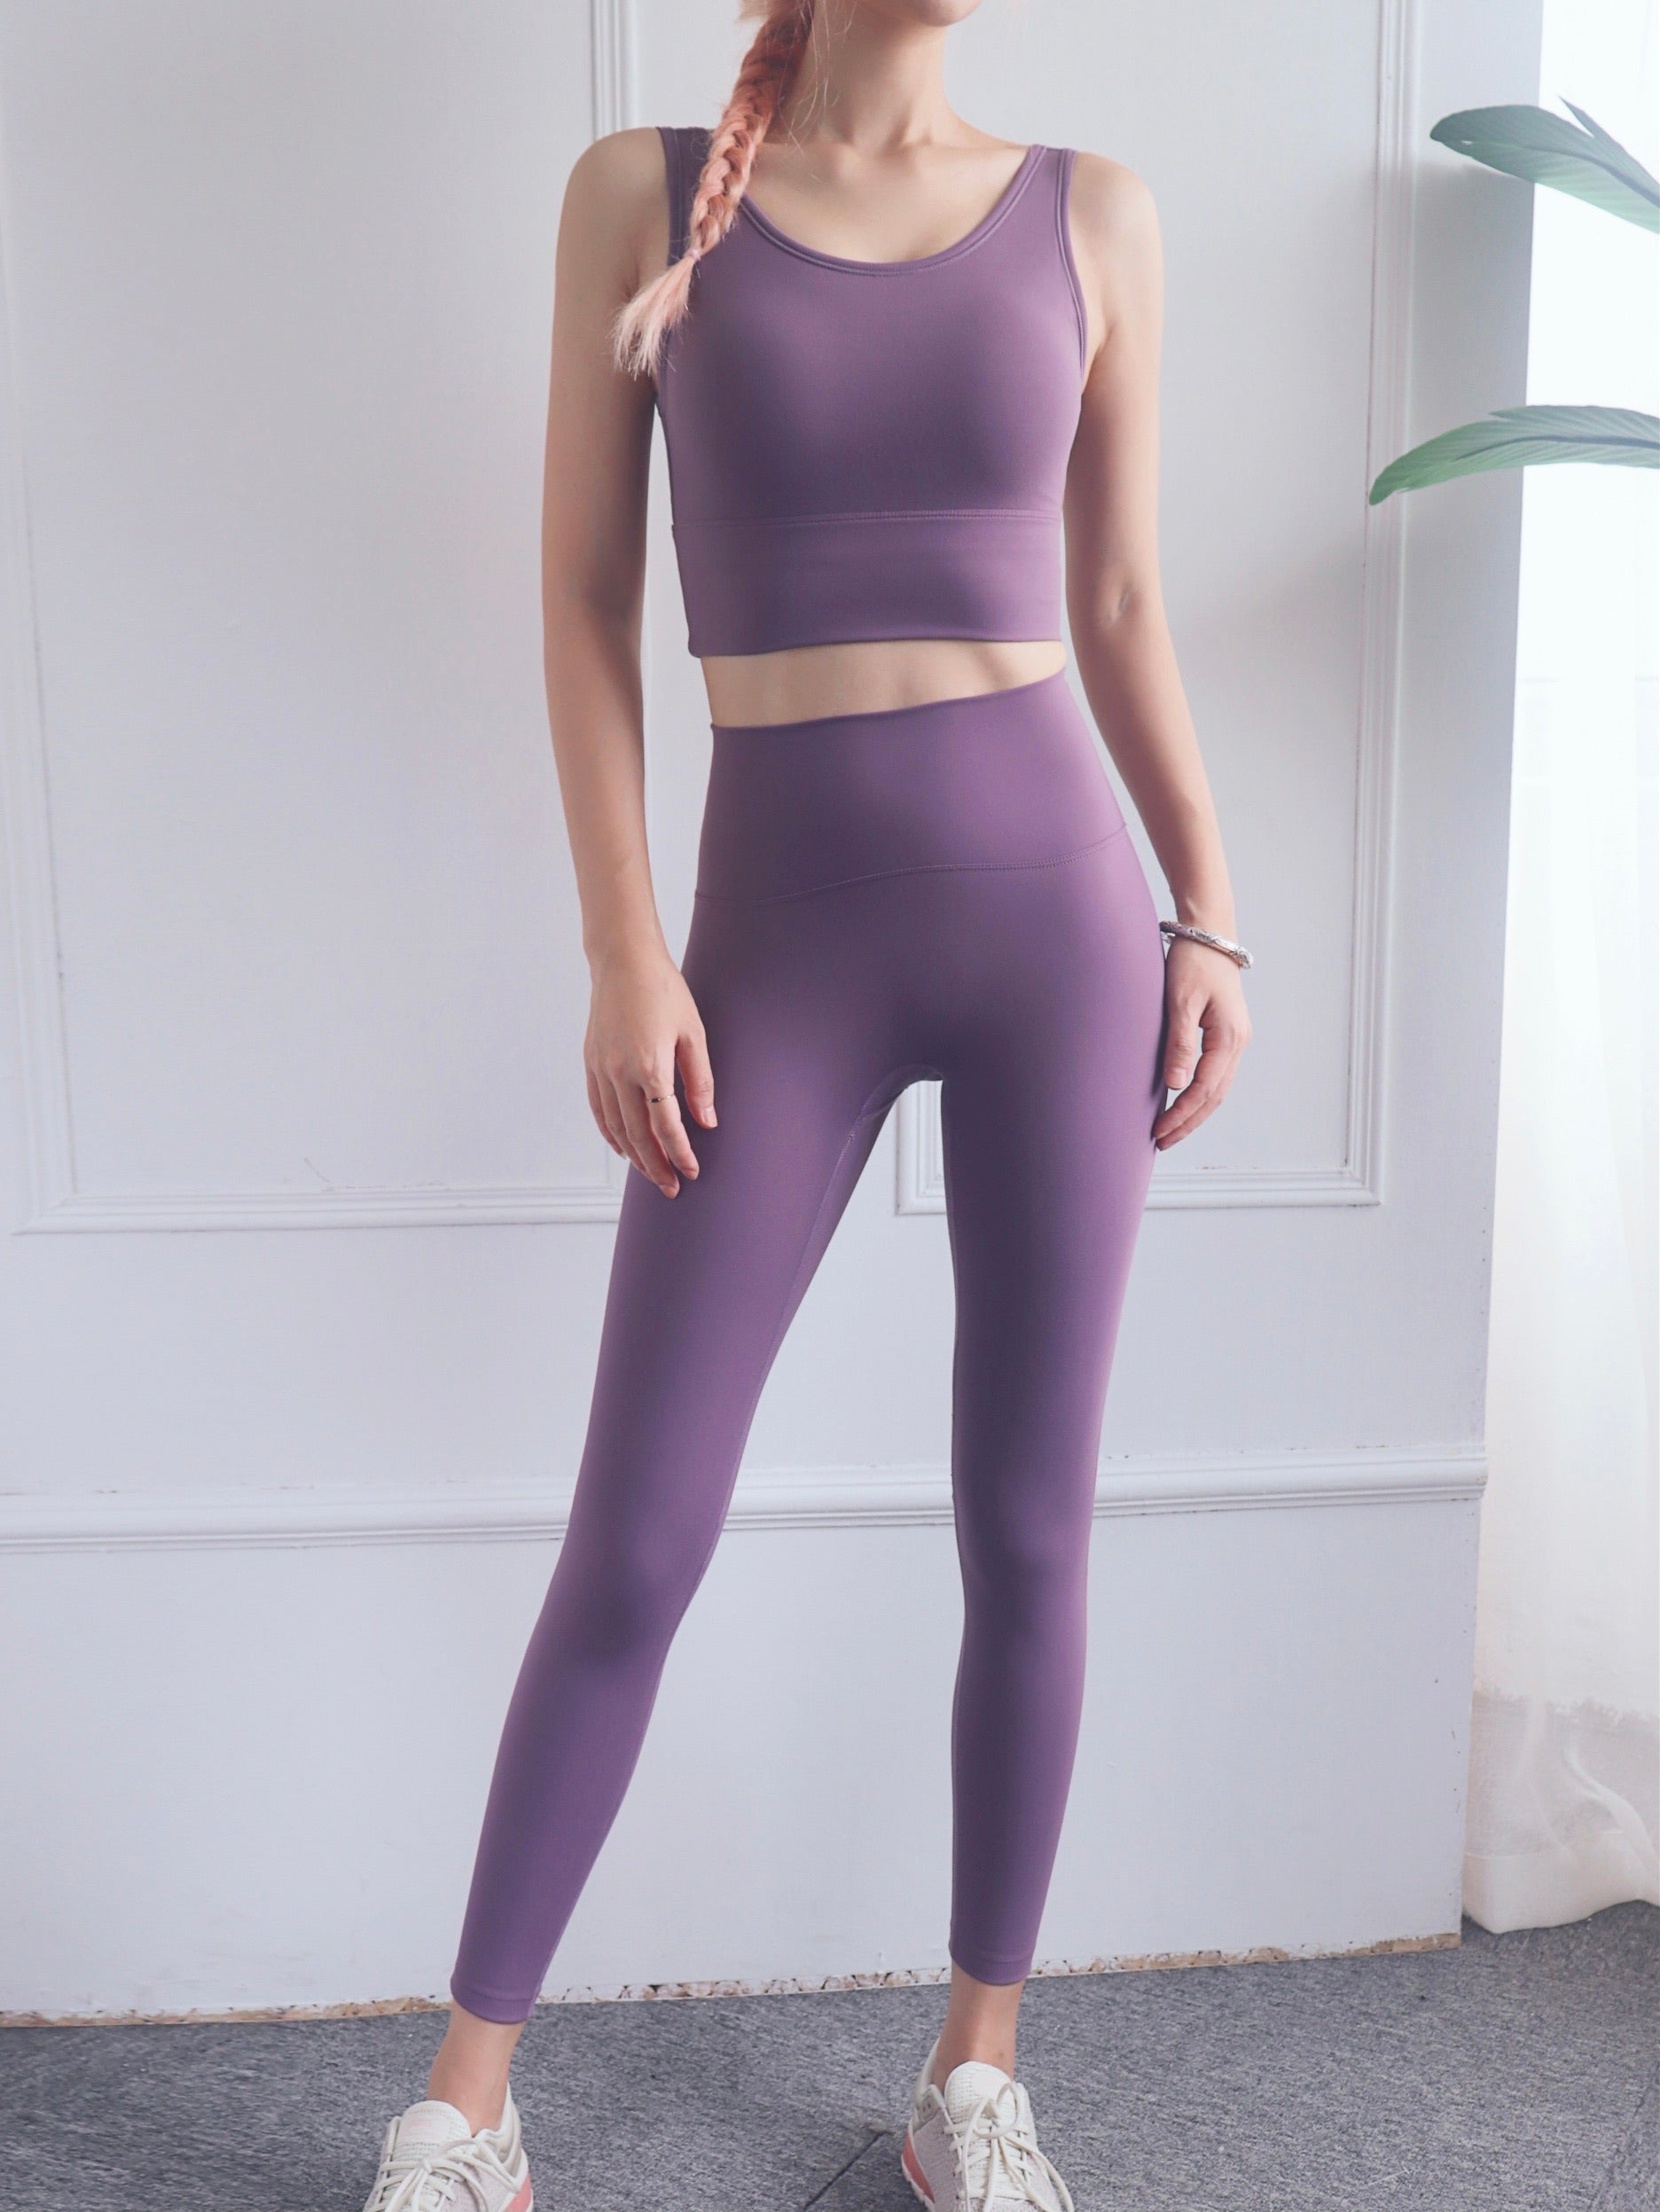 Vergo Purple Set